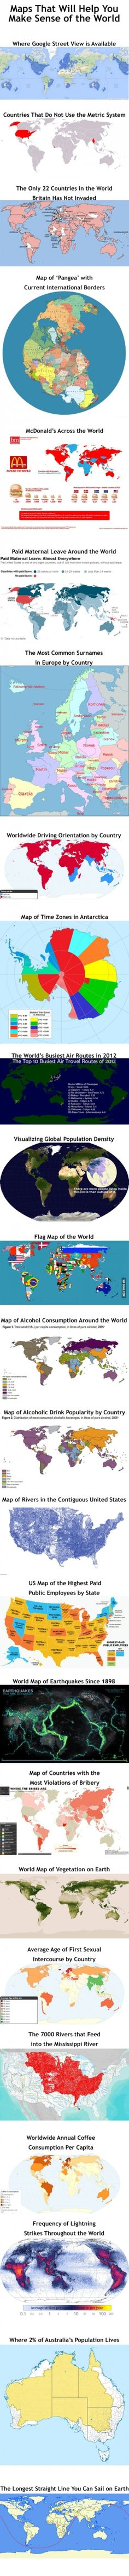 Maps That Will Help You Make Sense Of The World by echkbet